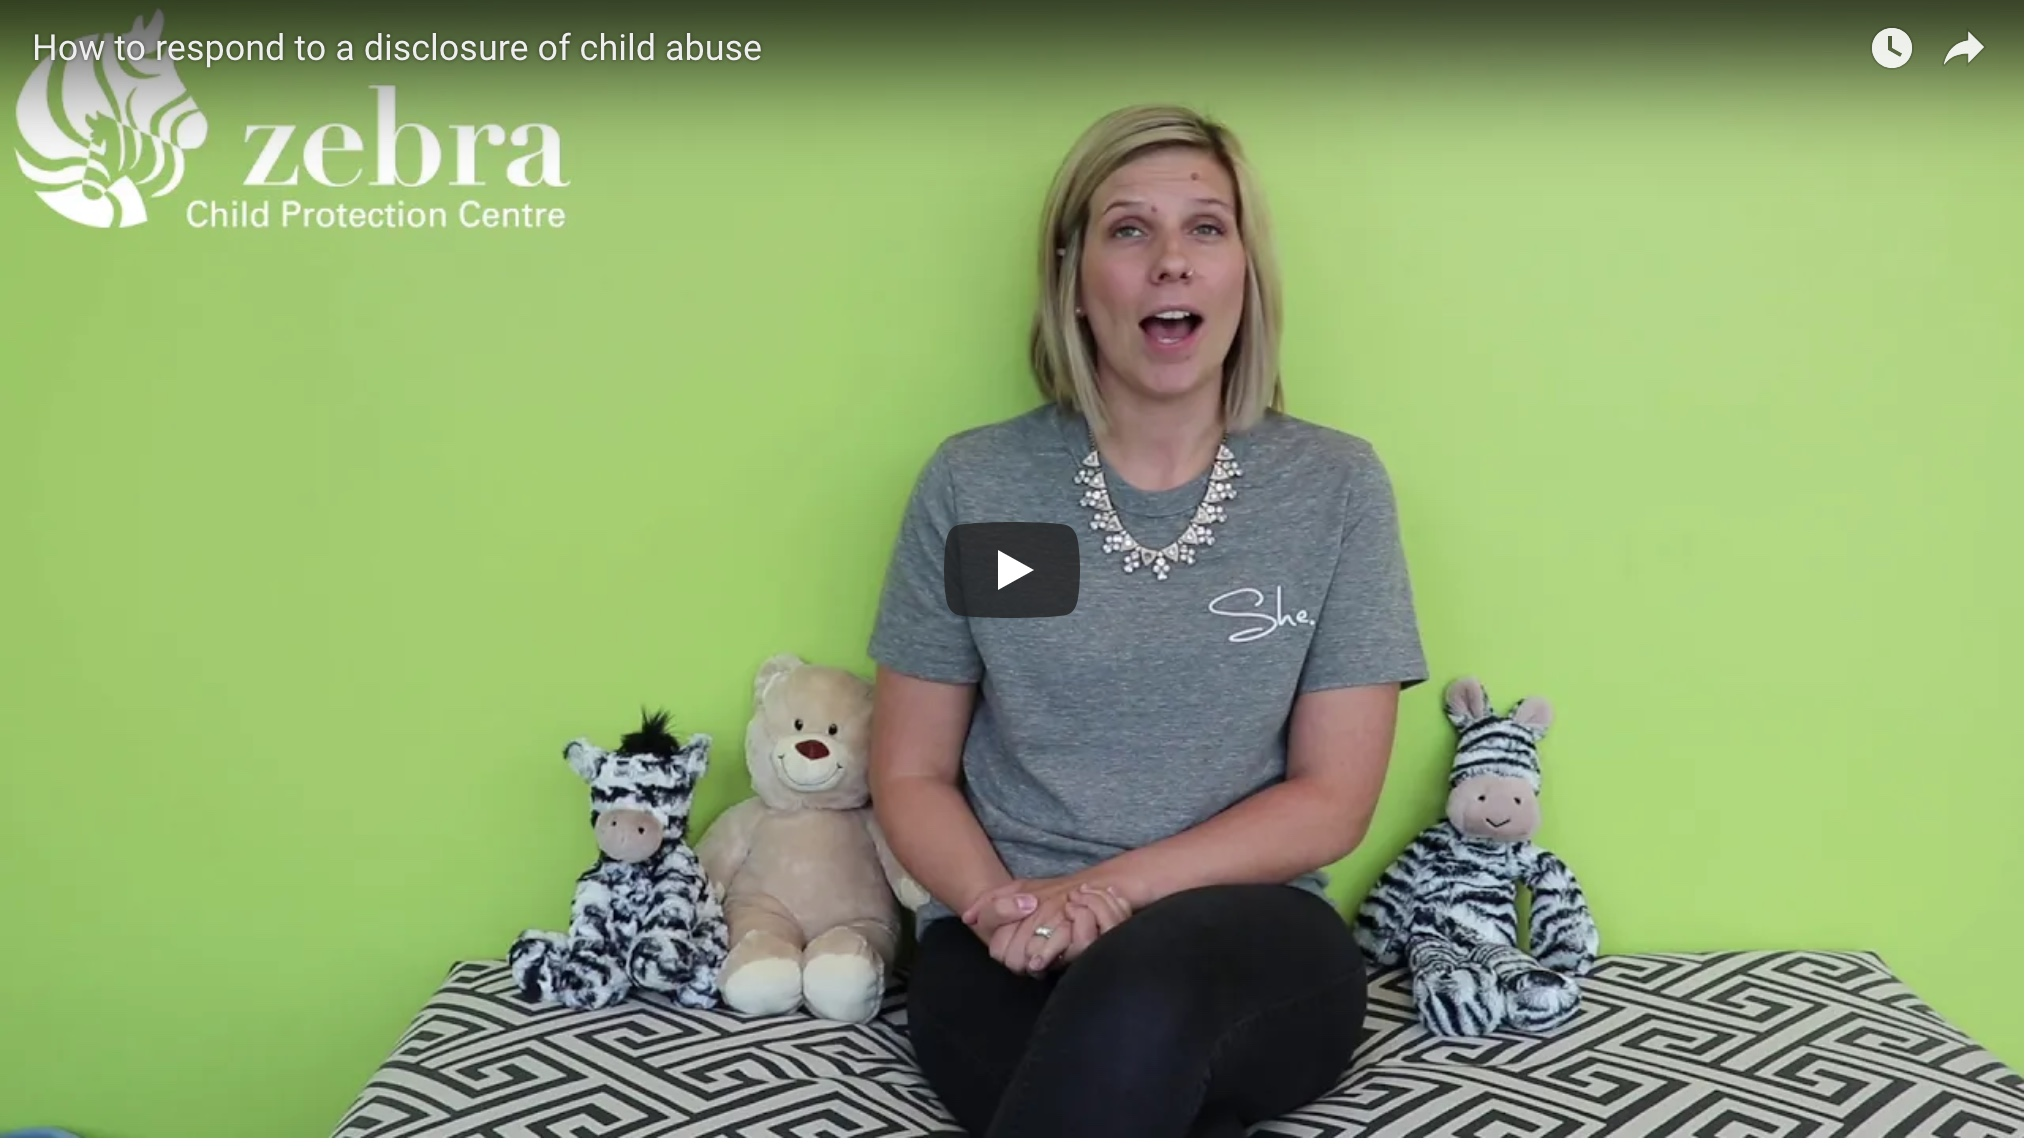 Receiving a disclosure of abuse: How to respond when a child shares their story with you